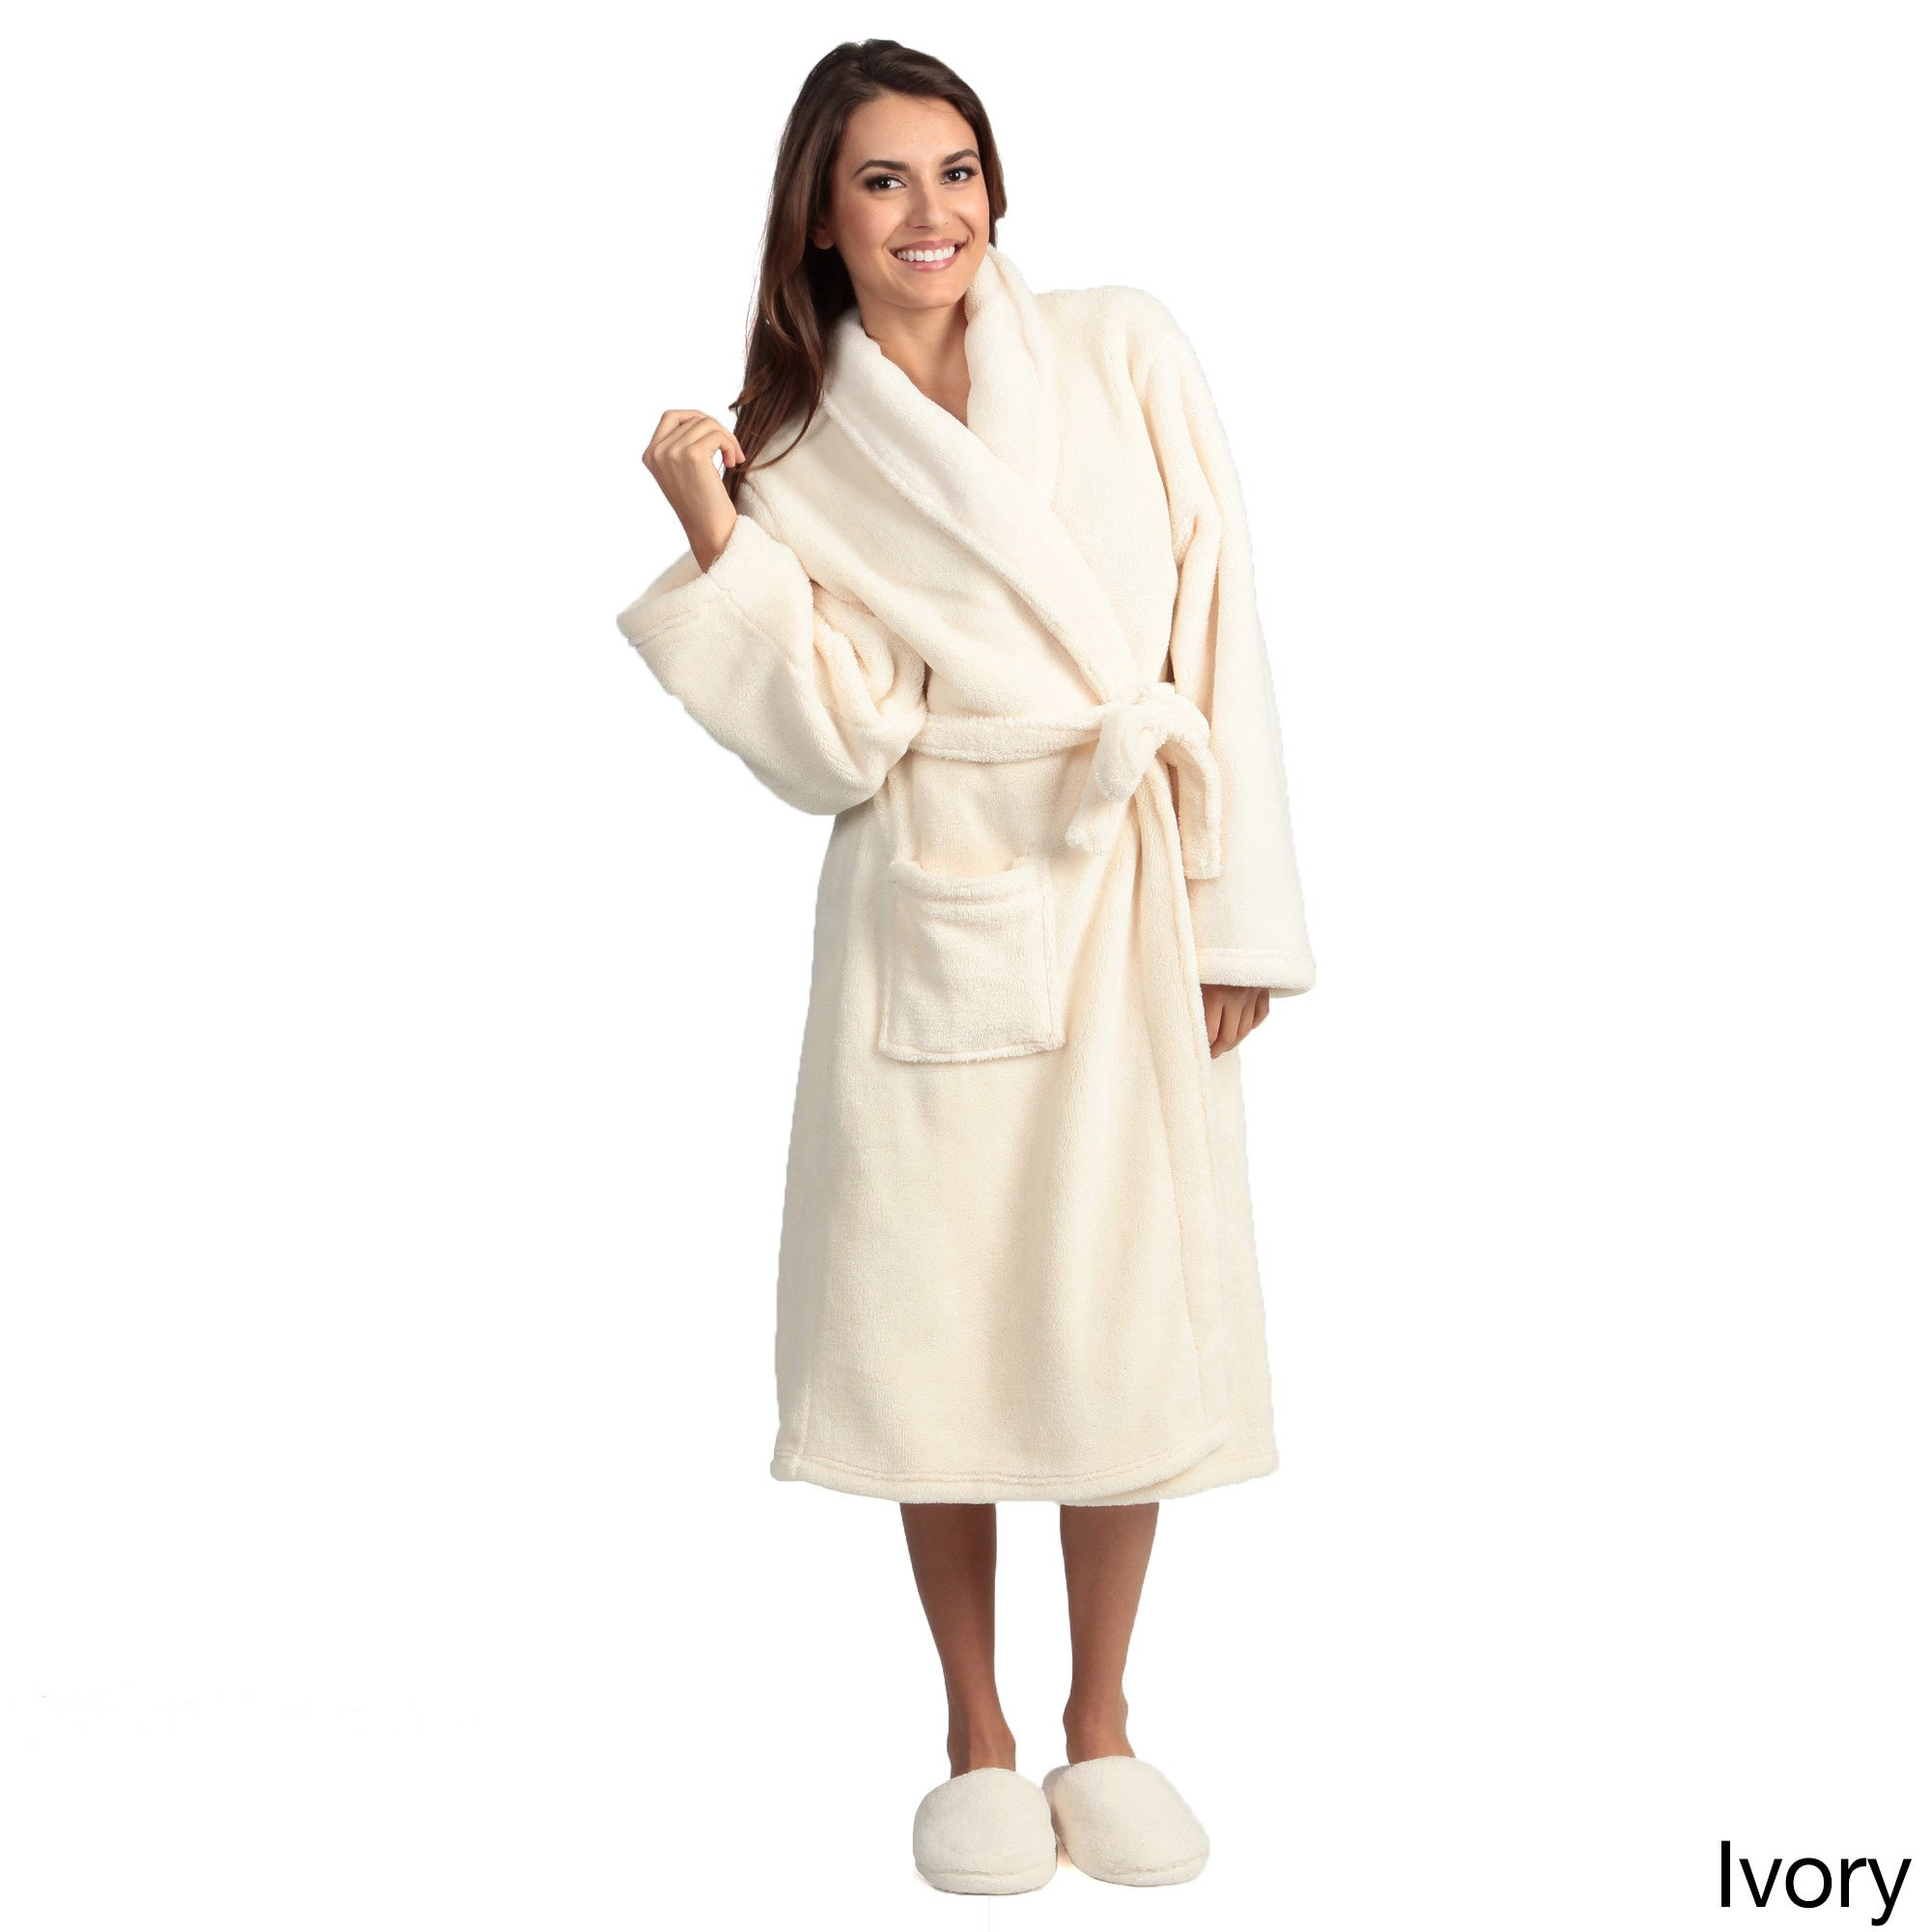 Bathrobe set for couple online dating